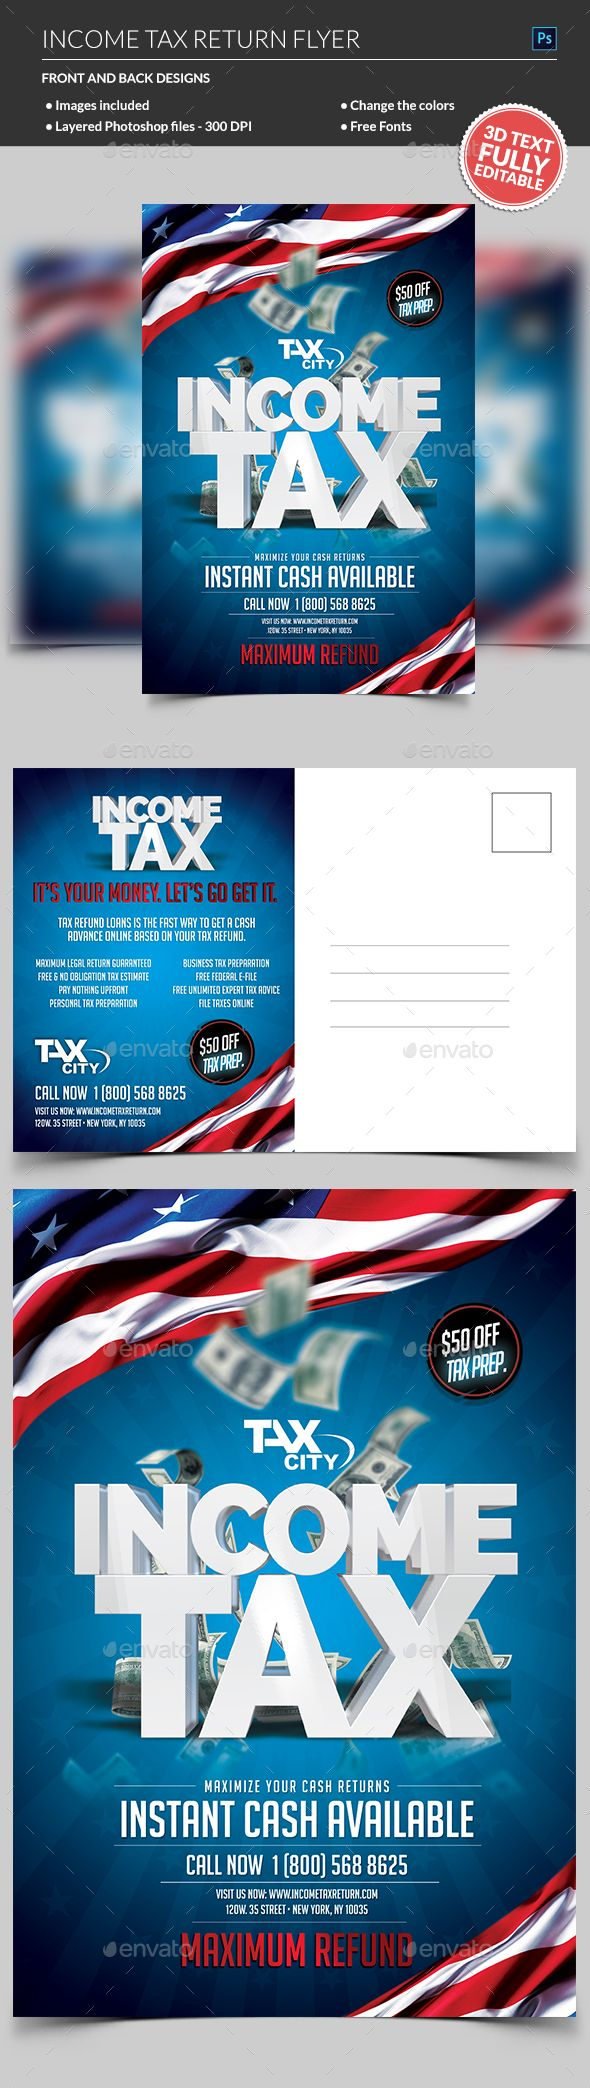 Income Tax Flyer Template Psd Flyer Templates Income Tax